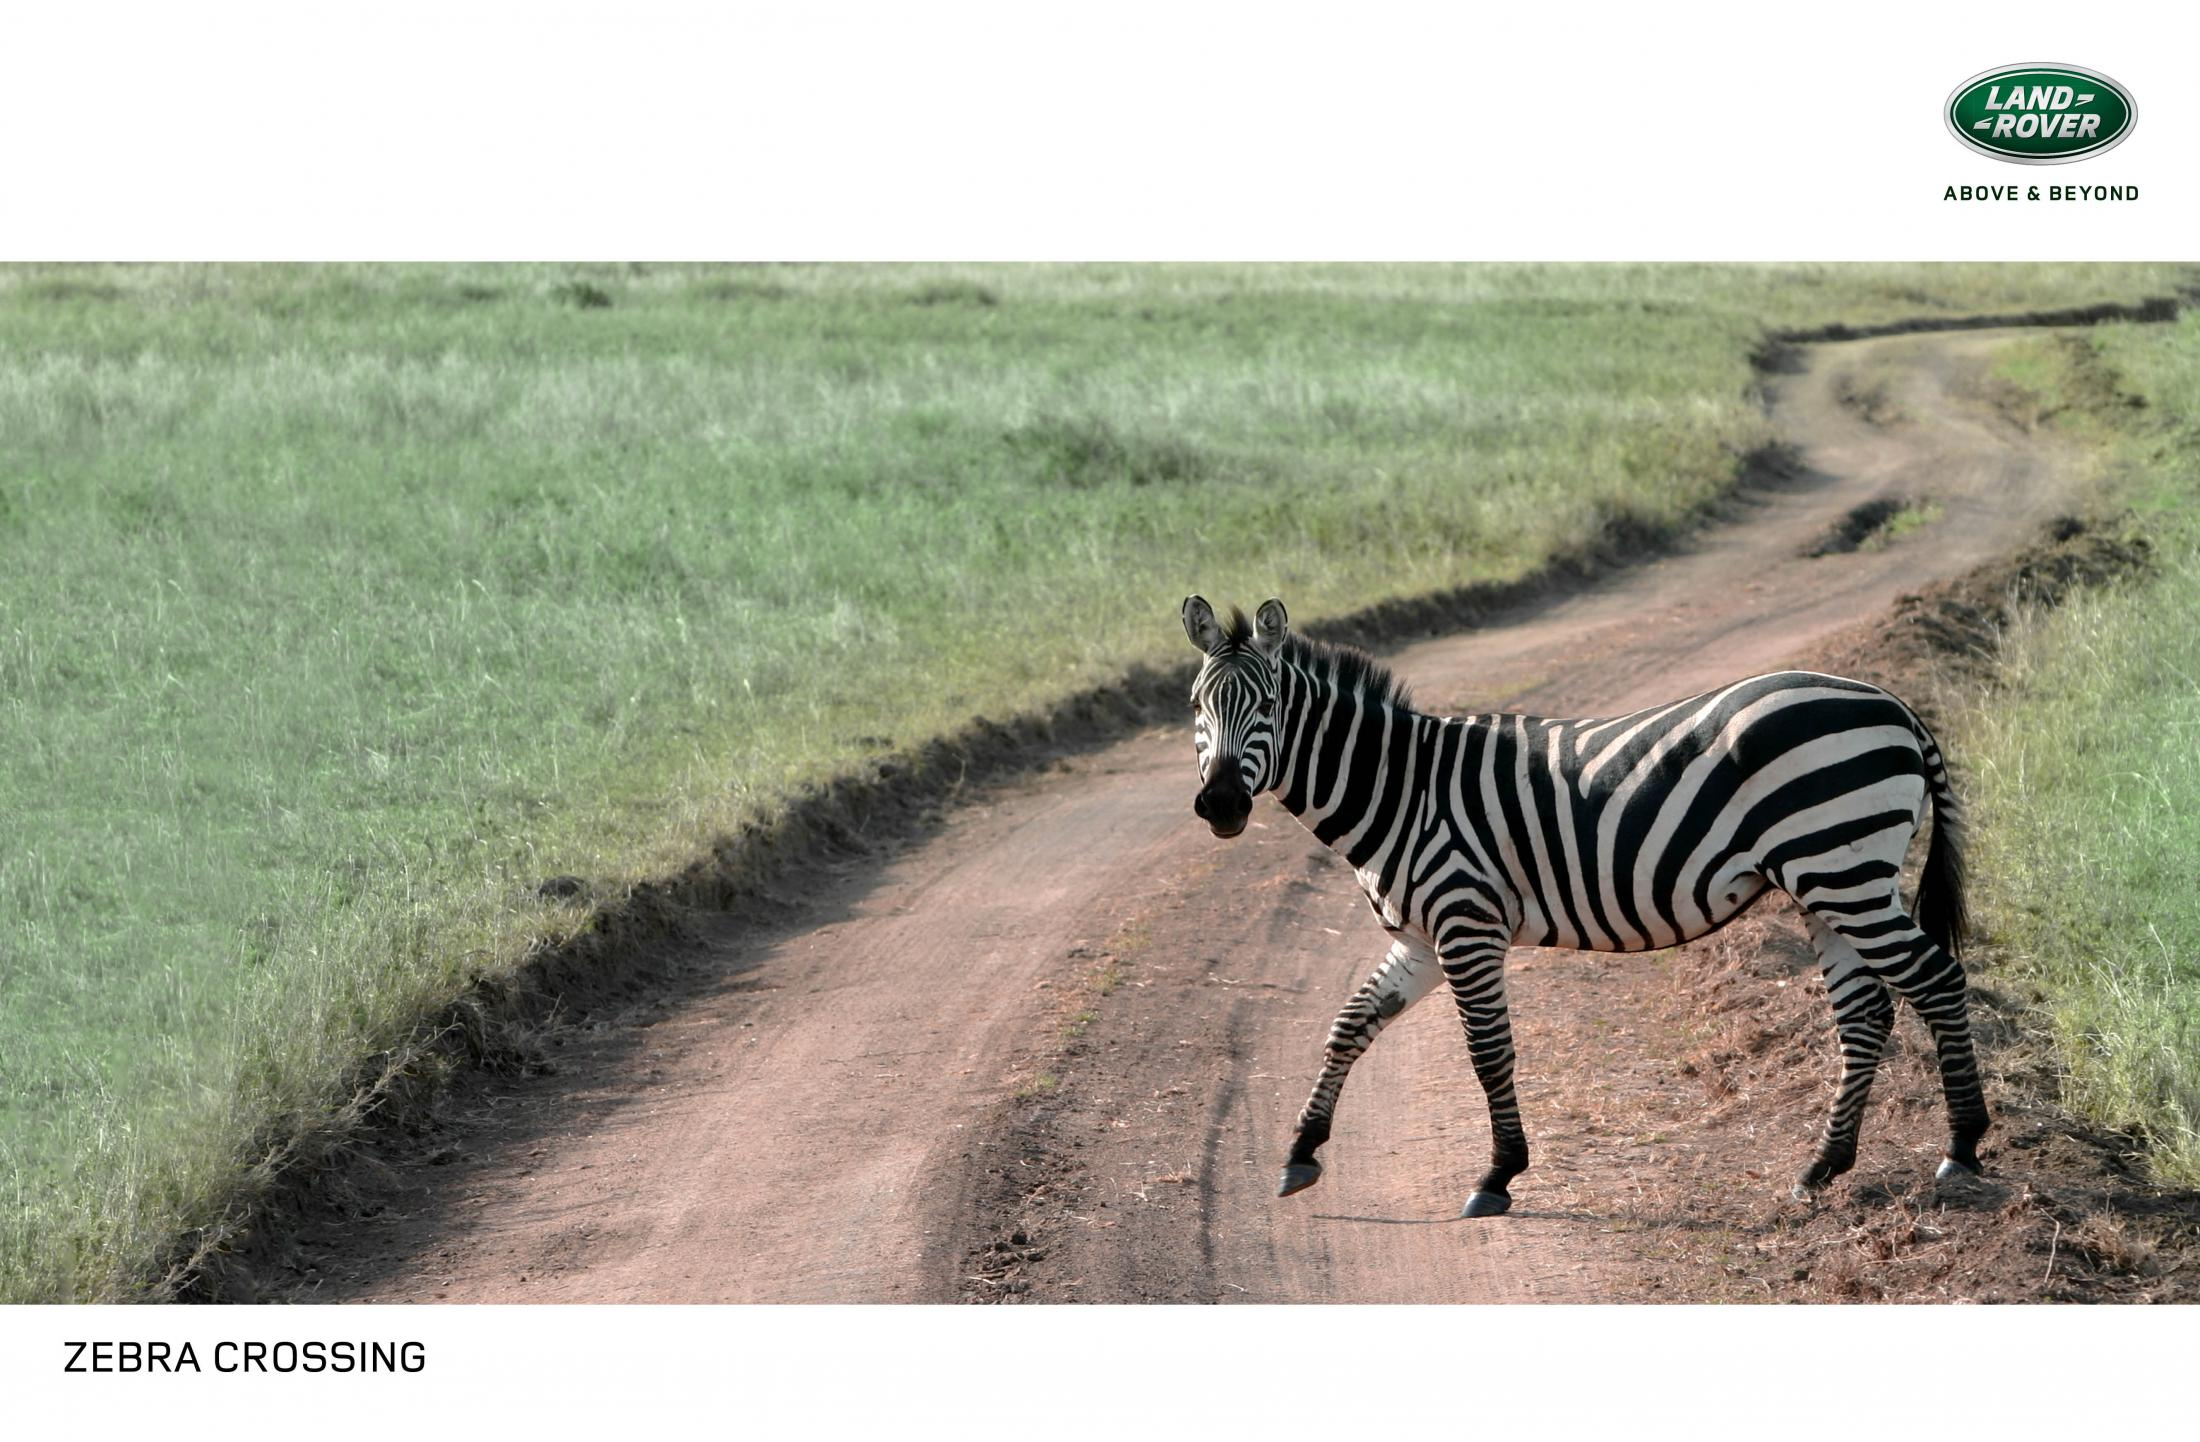 Land Rover Print Ad - Zebra Crossing